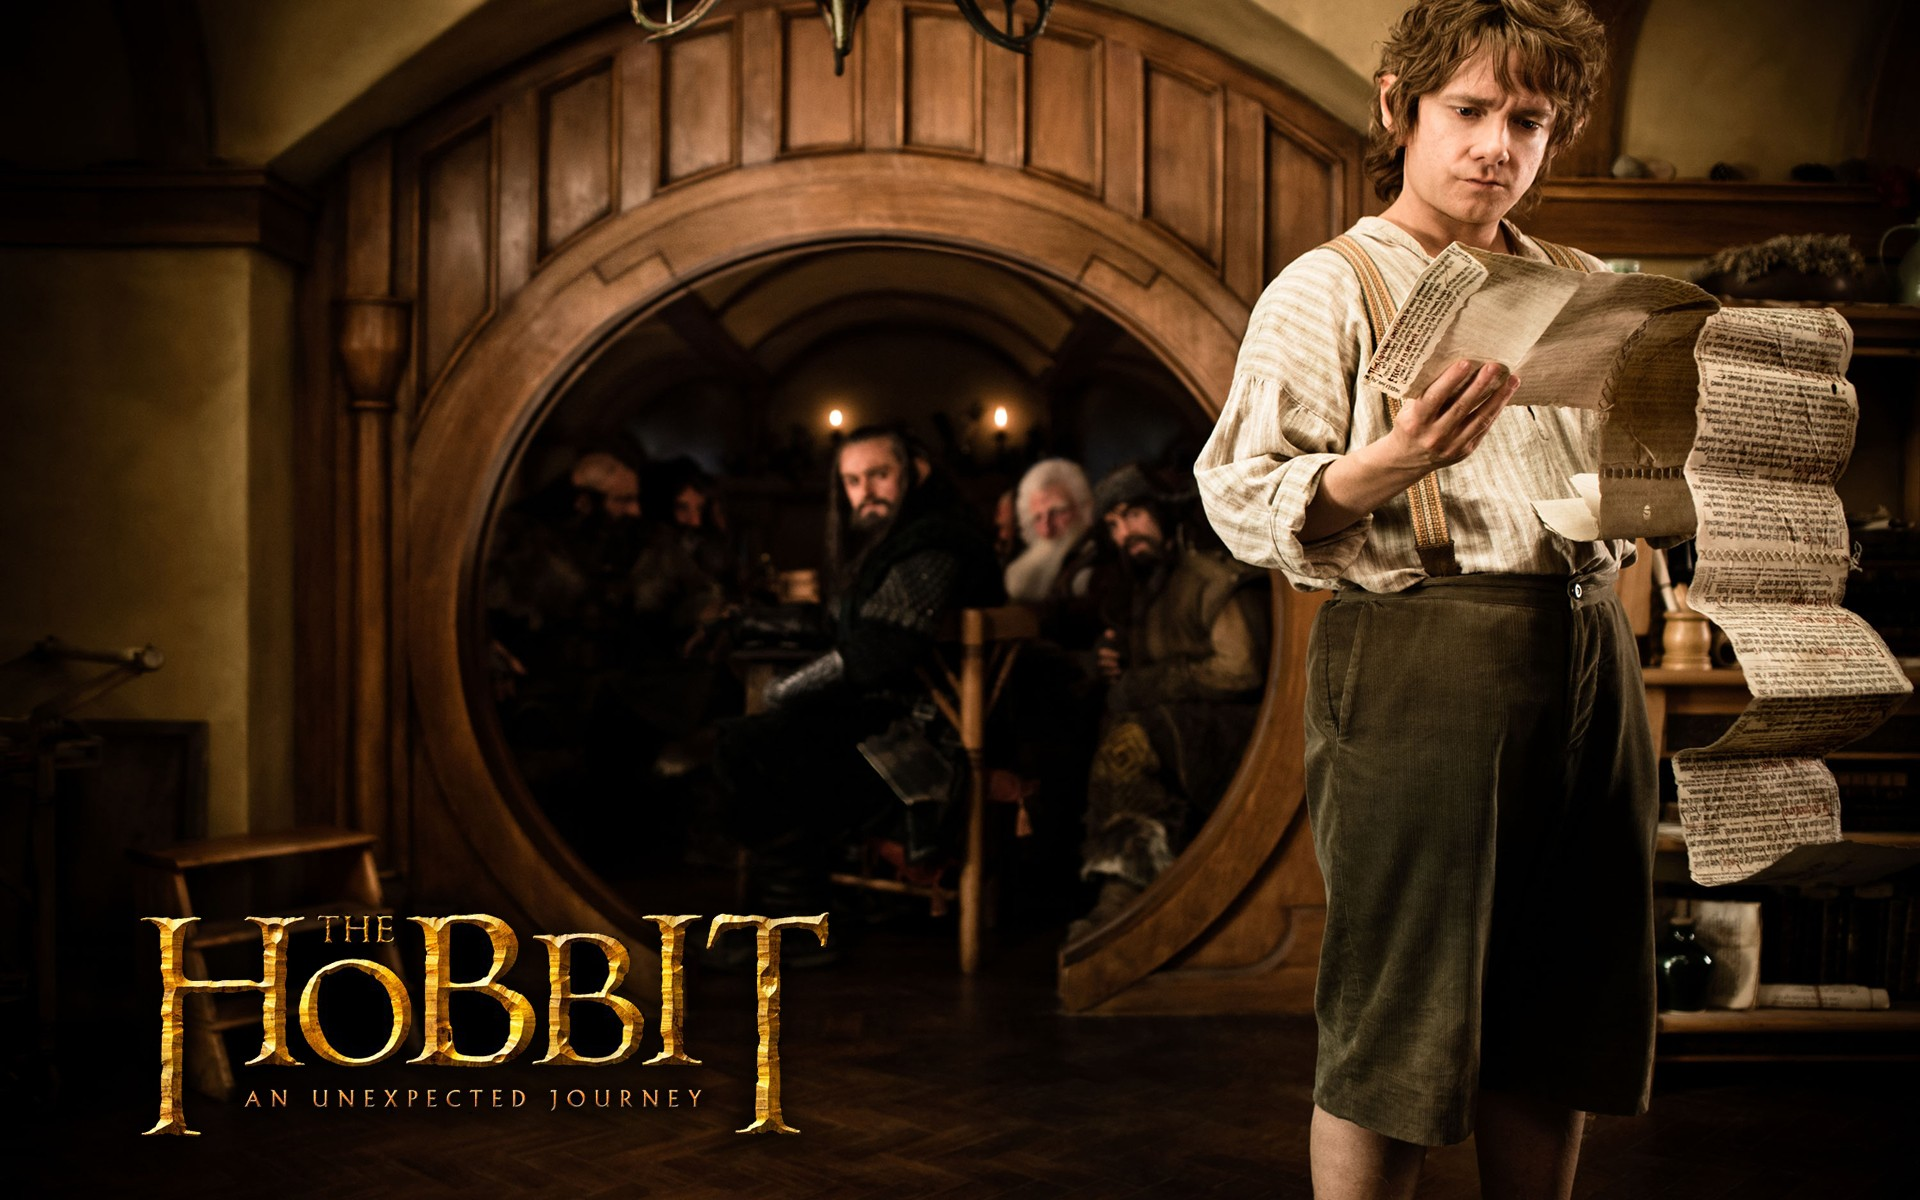 The Hobbit Wallpapers The Hobbit Myspace Backgrounds The Hobbit 1920x1200